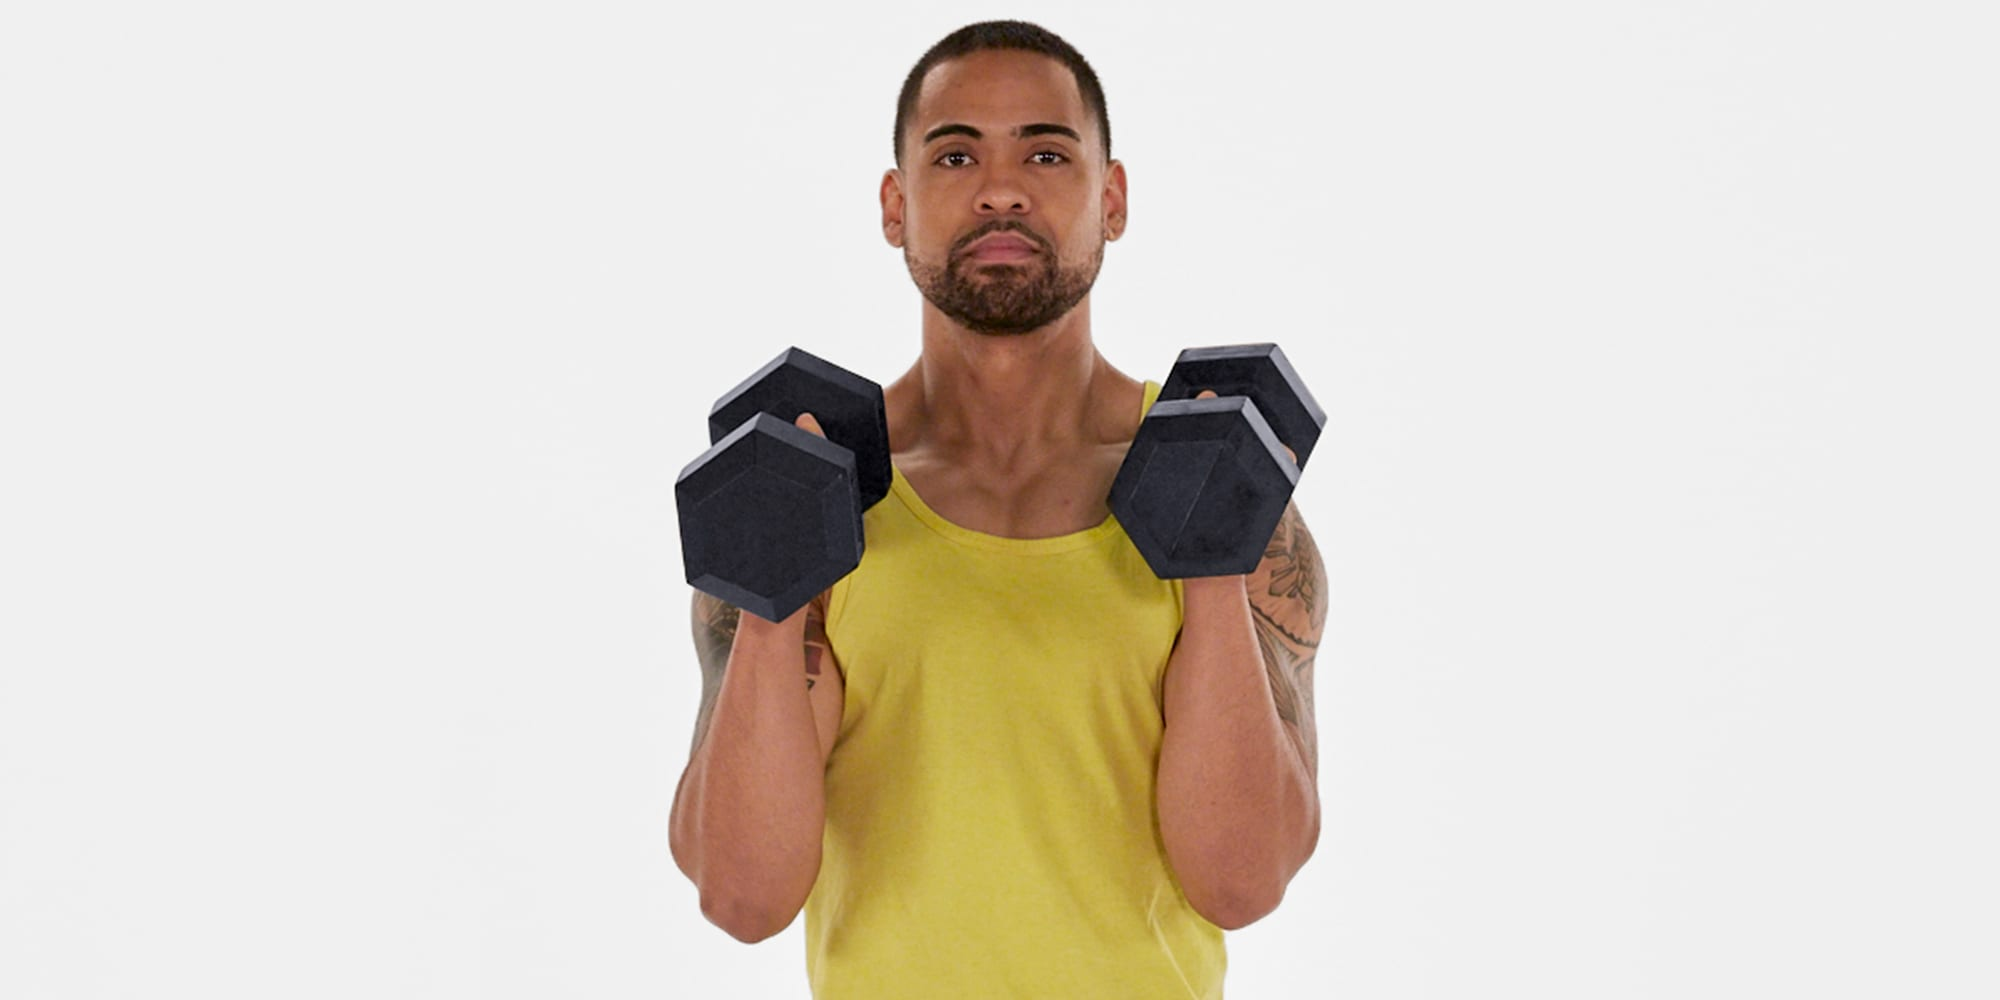 10 of the Best Compound Exercises for Muscle and Strength